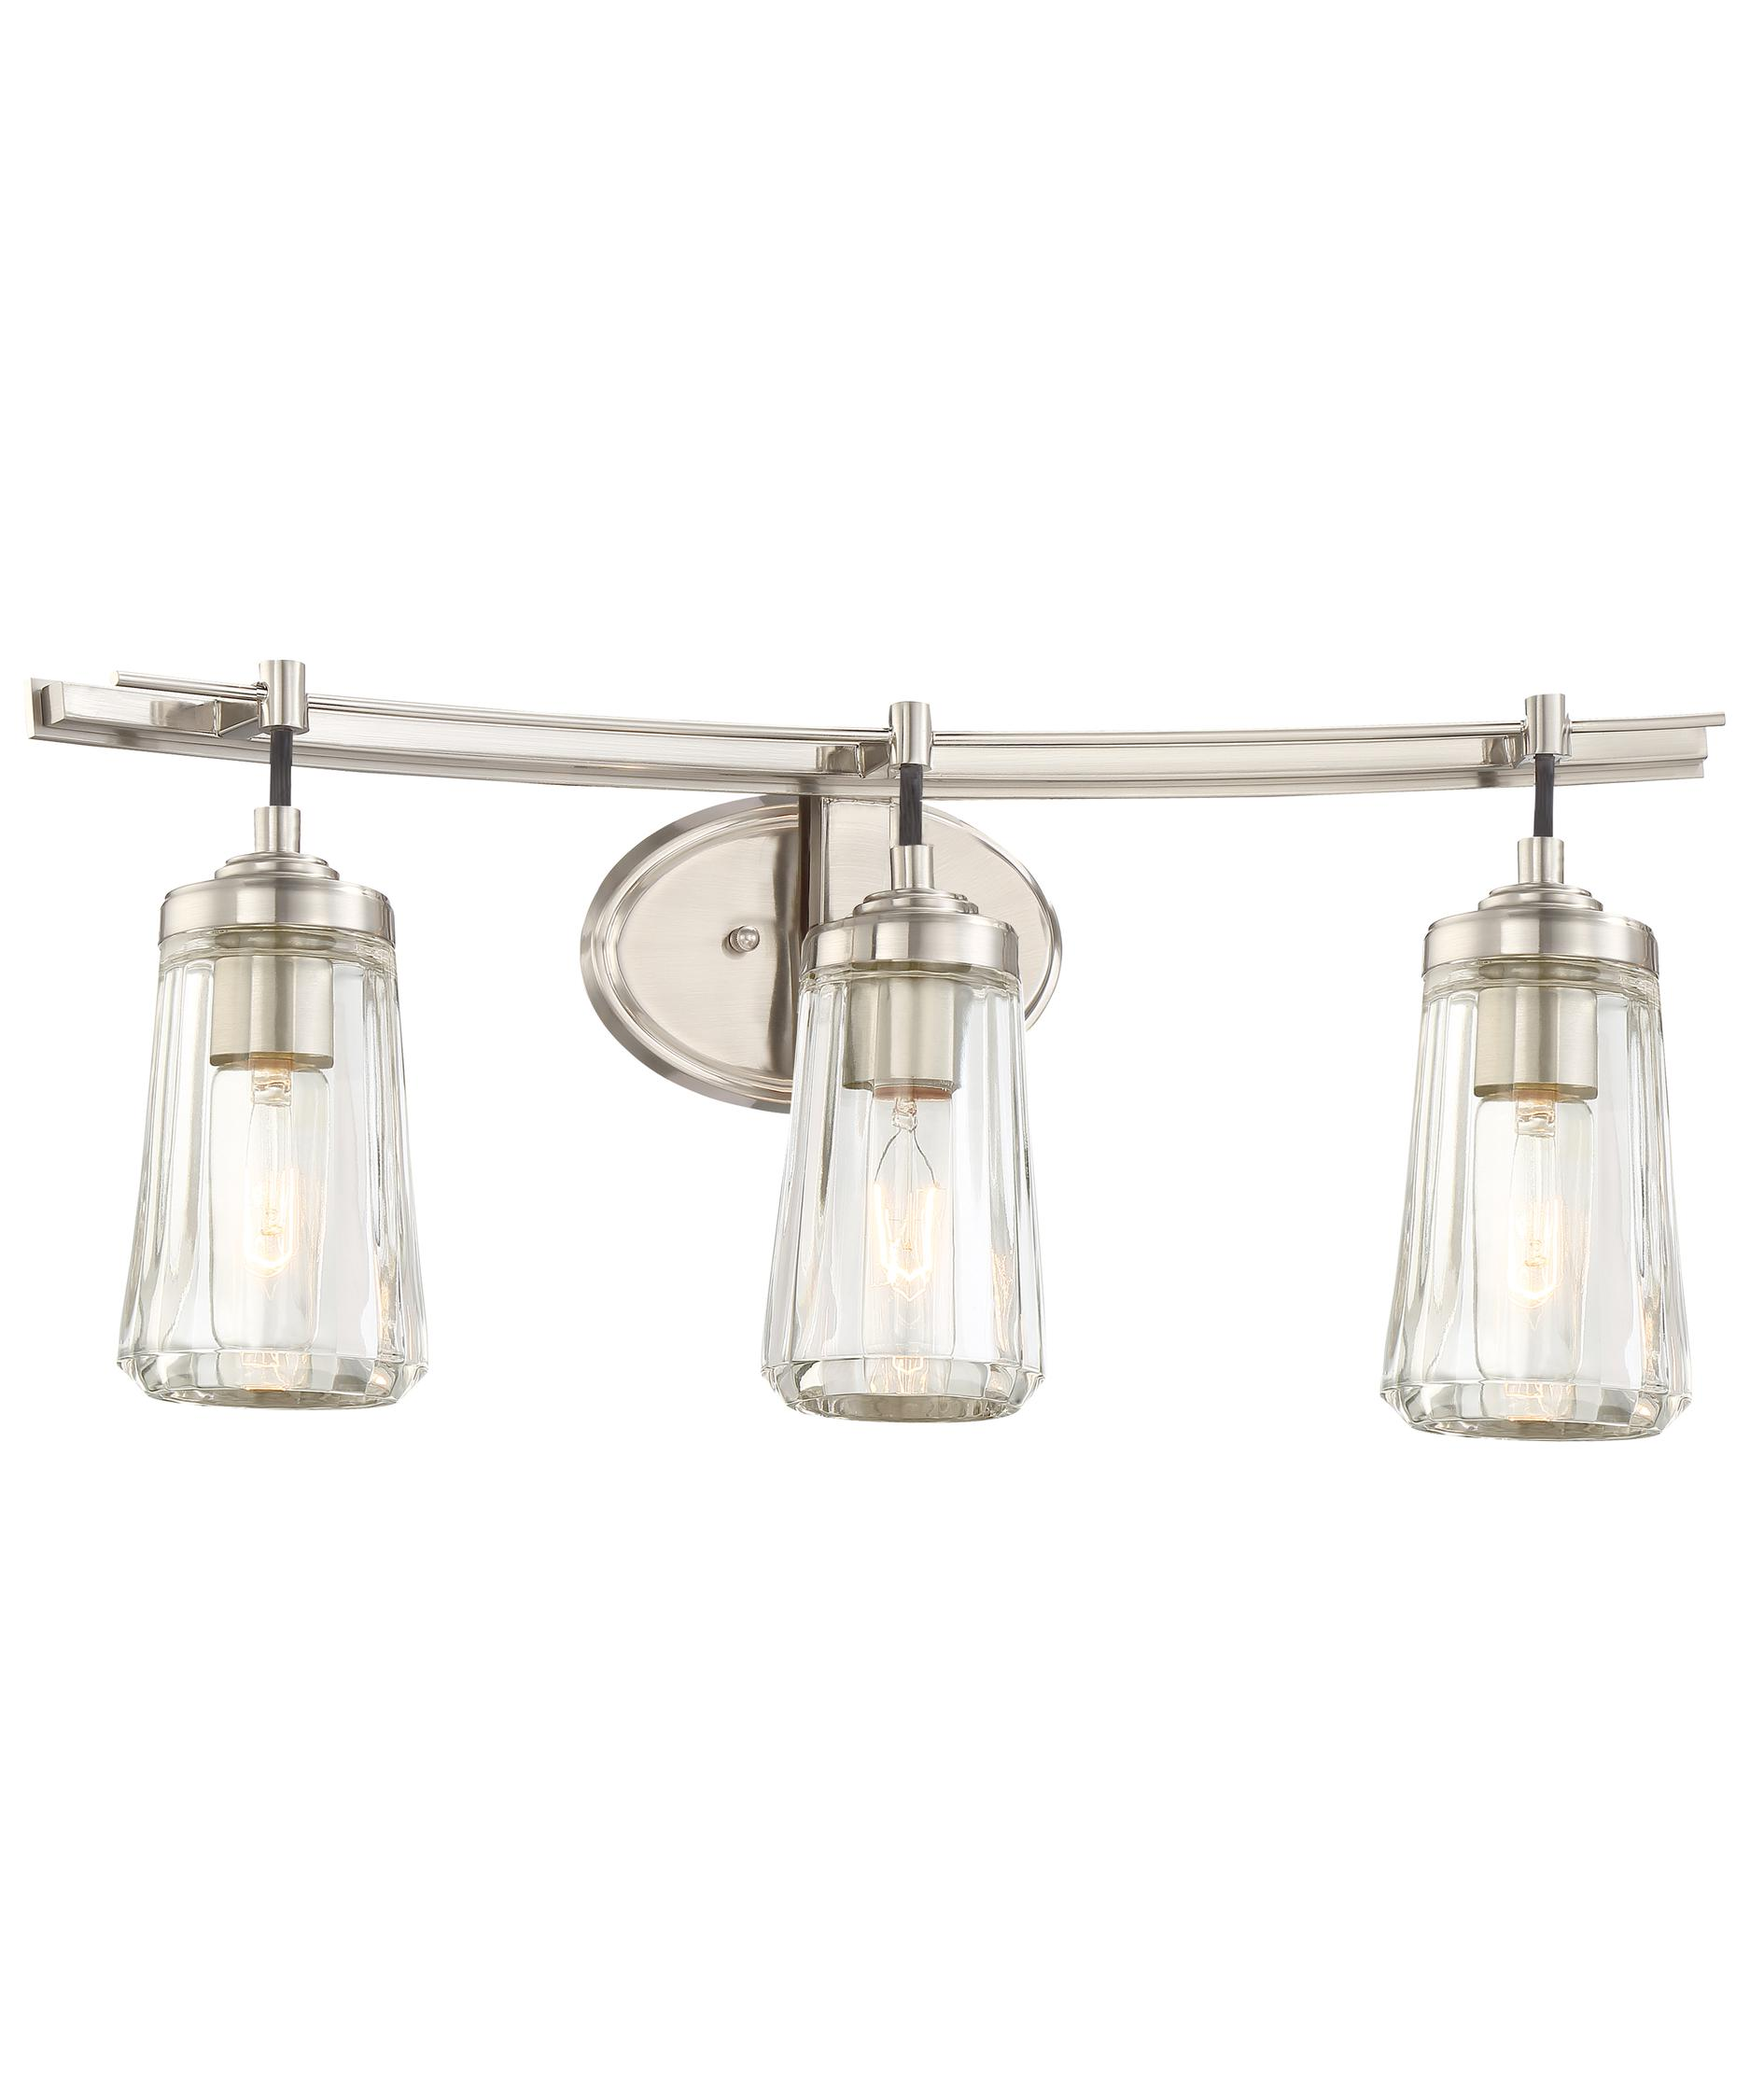 shown in brushed nickel finish and clear glass bathroom vanity lighting 1